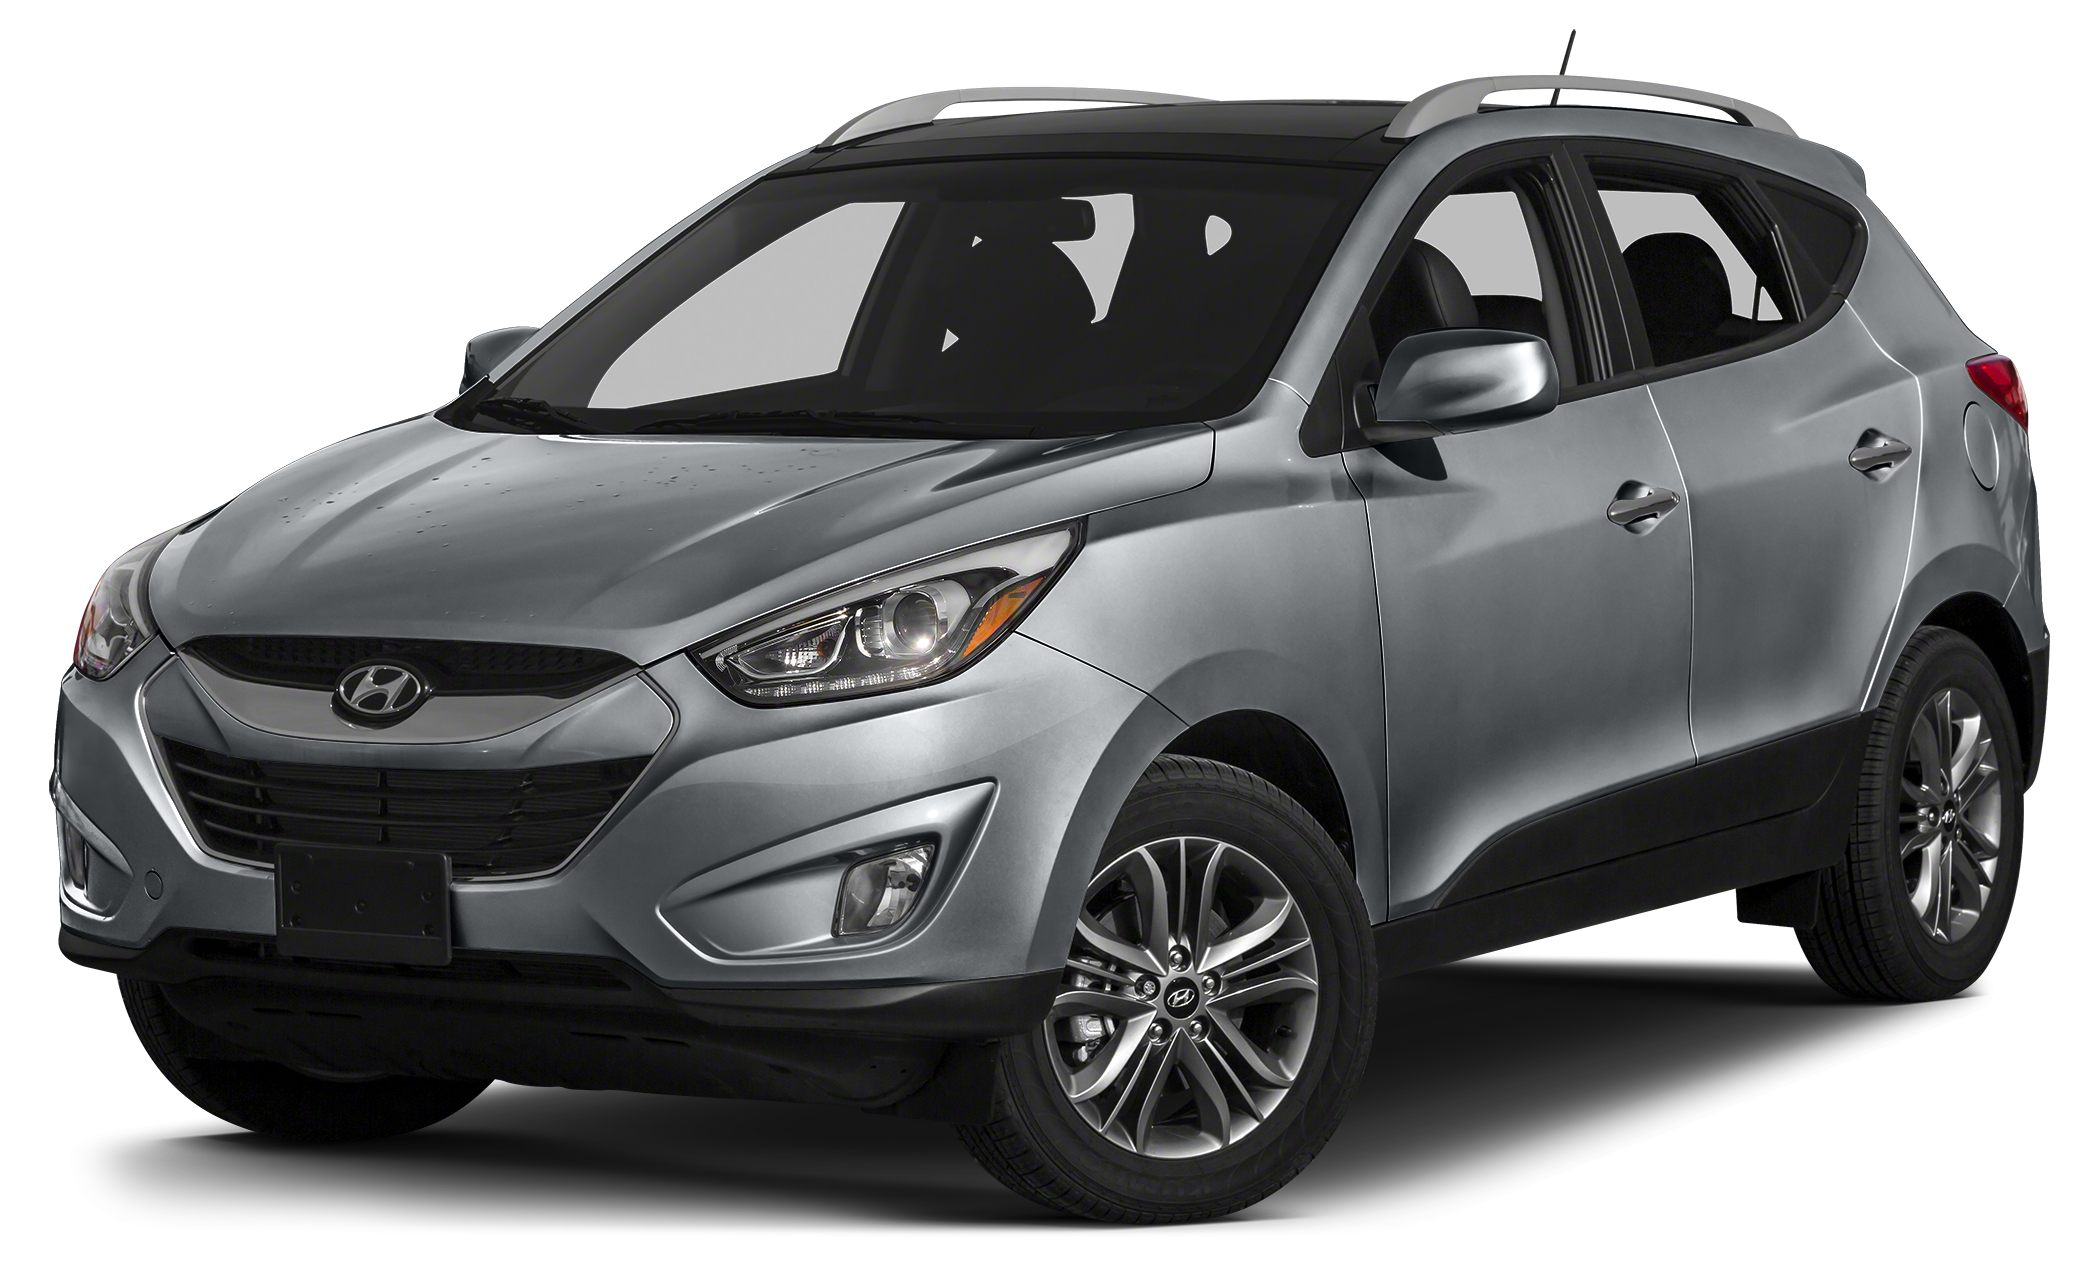 2014 Hyundai Tucson GLS Only 12k miles AND is All Wheel Drive Included remote keyless entry 17